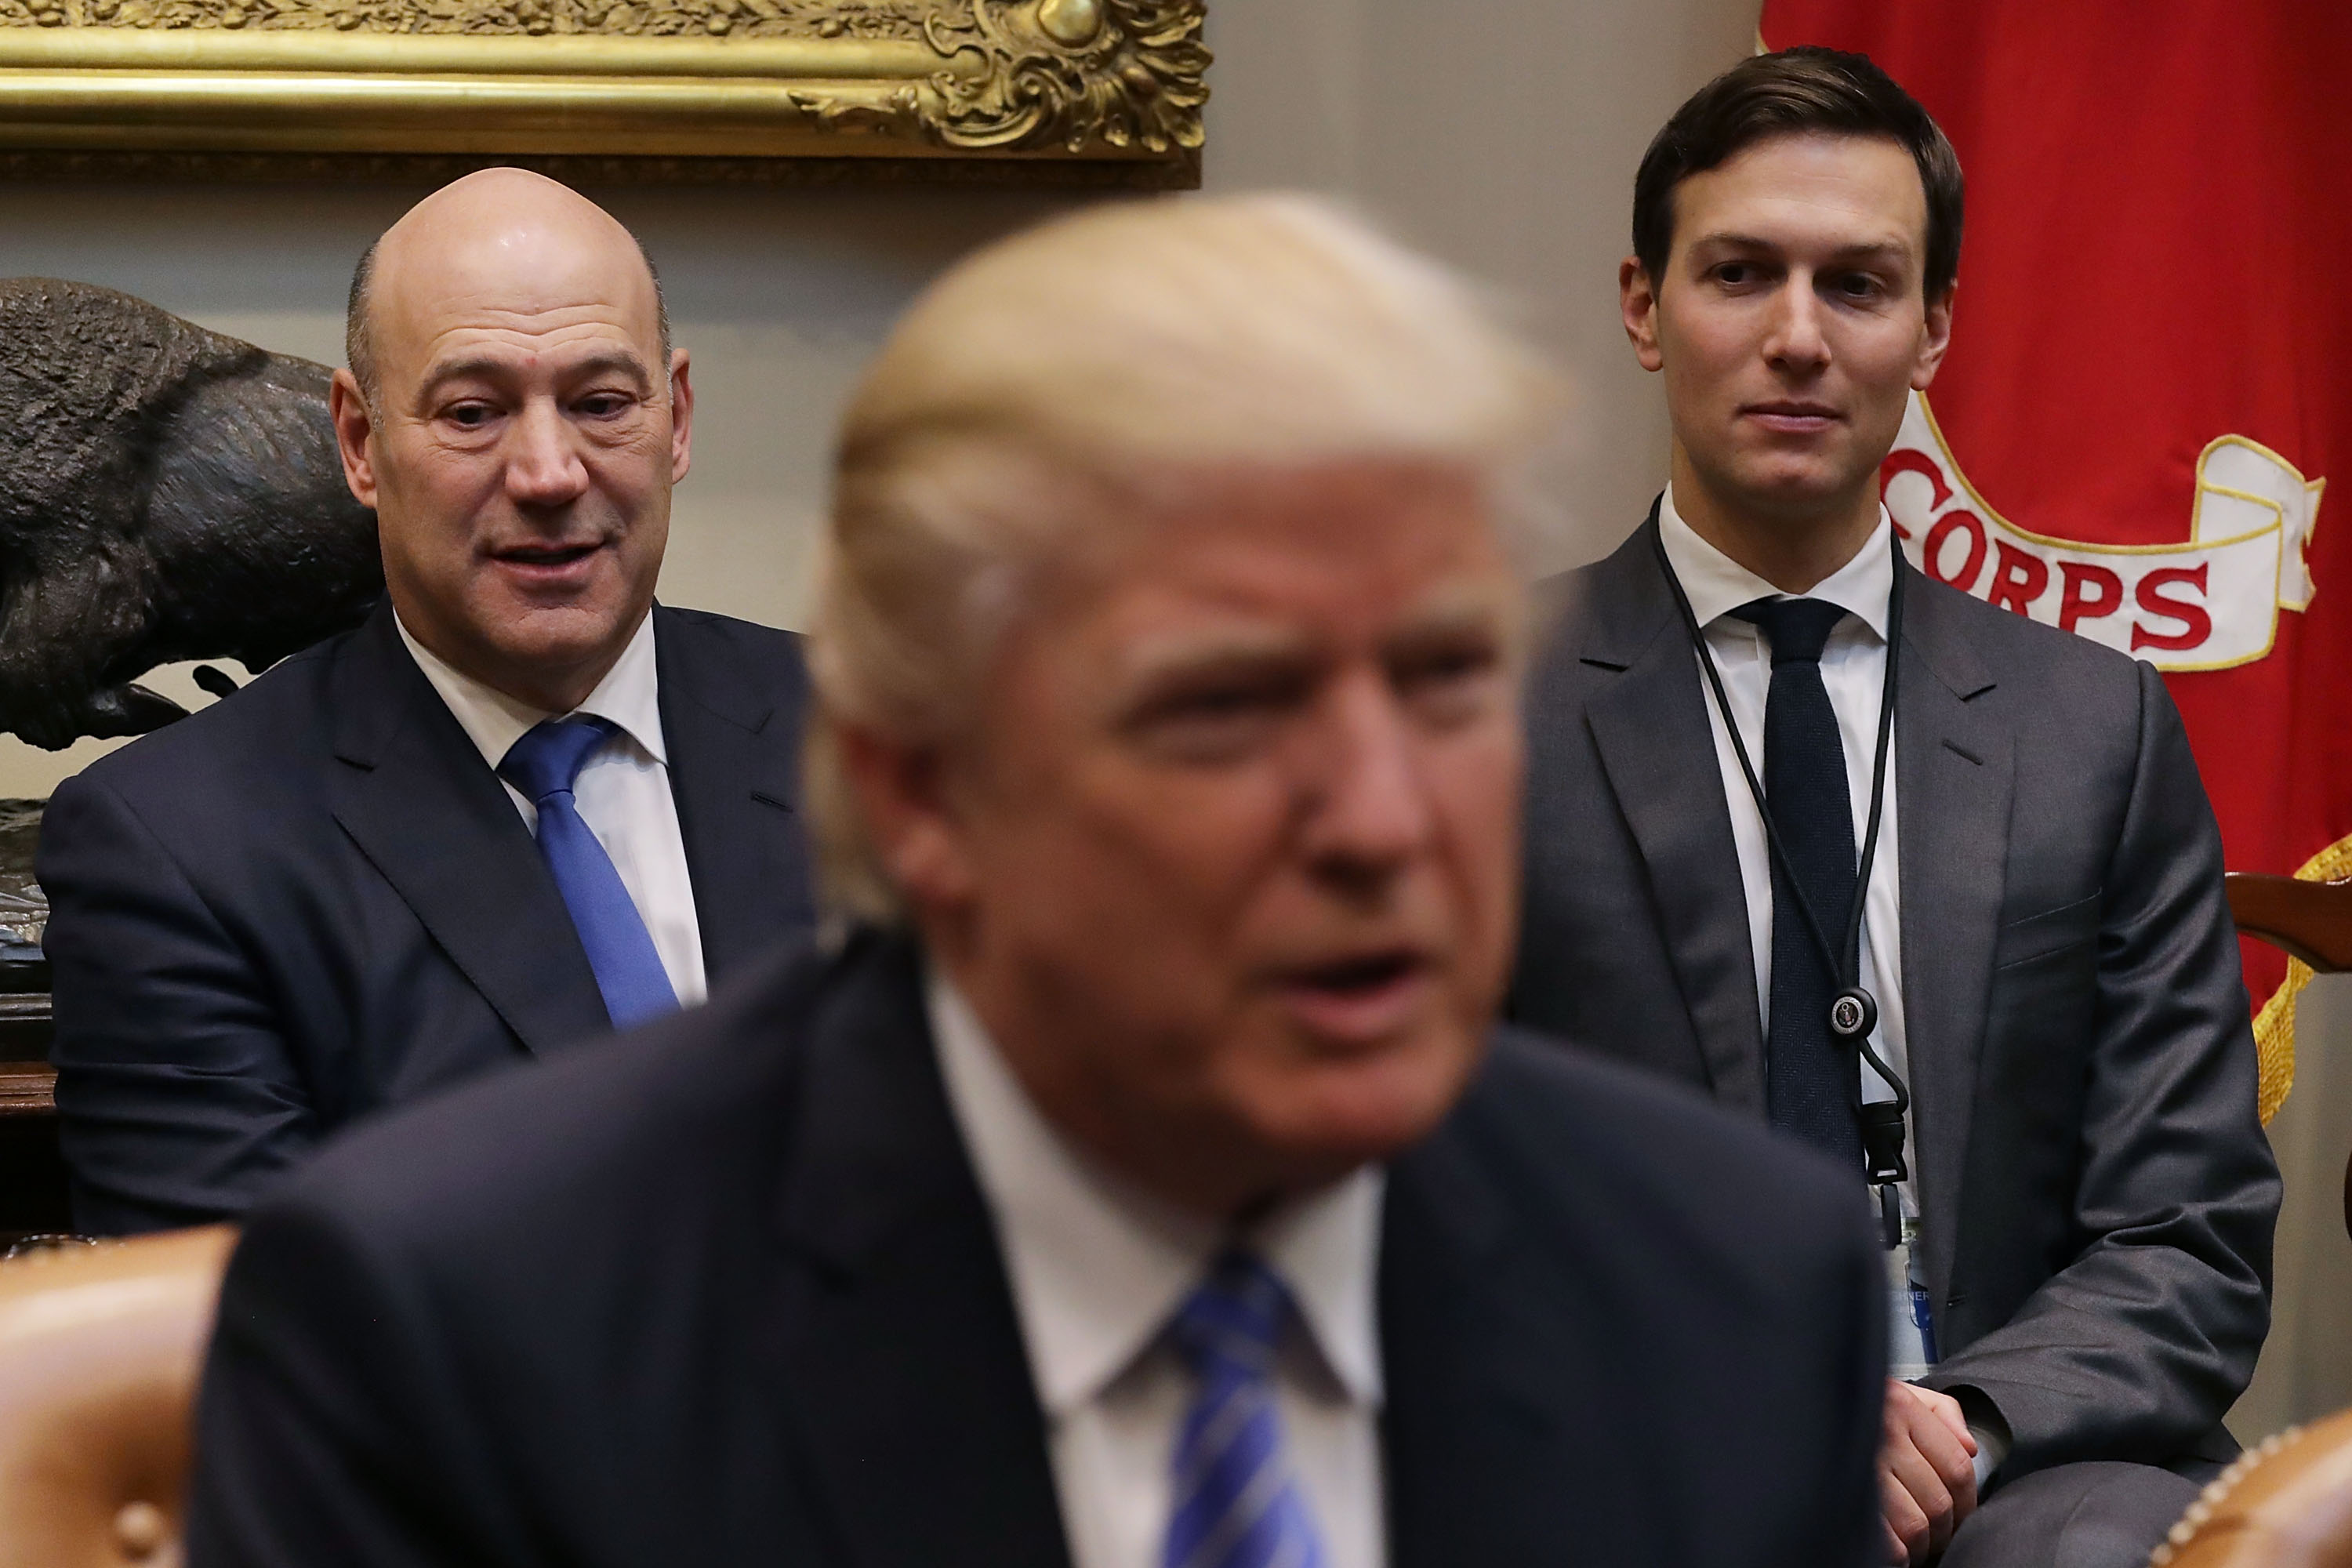 It's not just Gary Cohn. Trump's White House is in a staffing crisis.